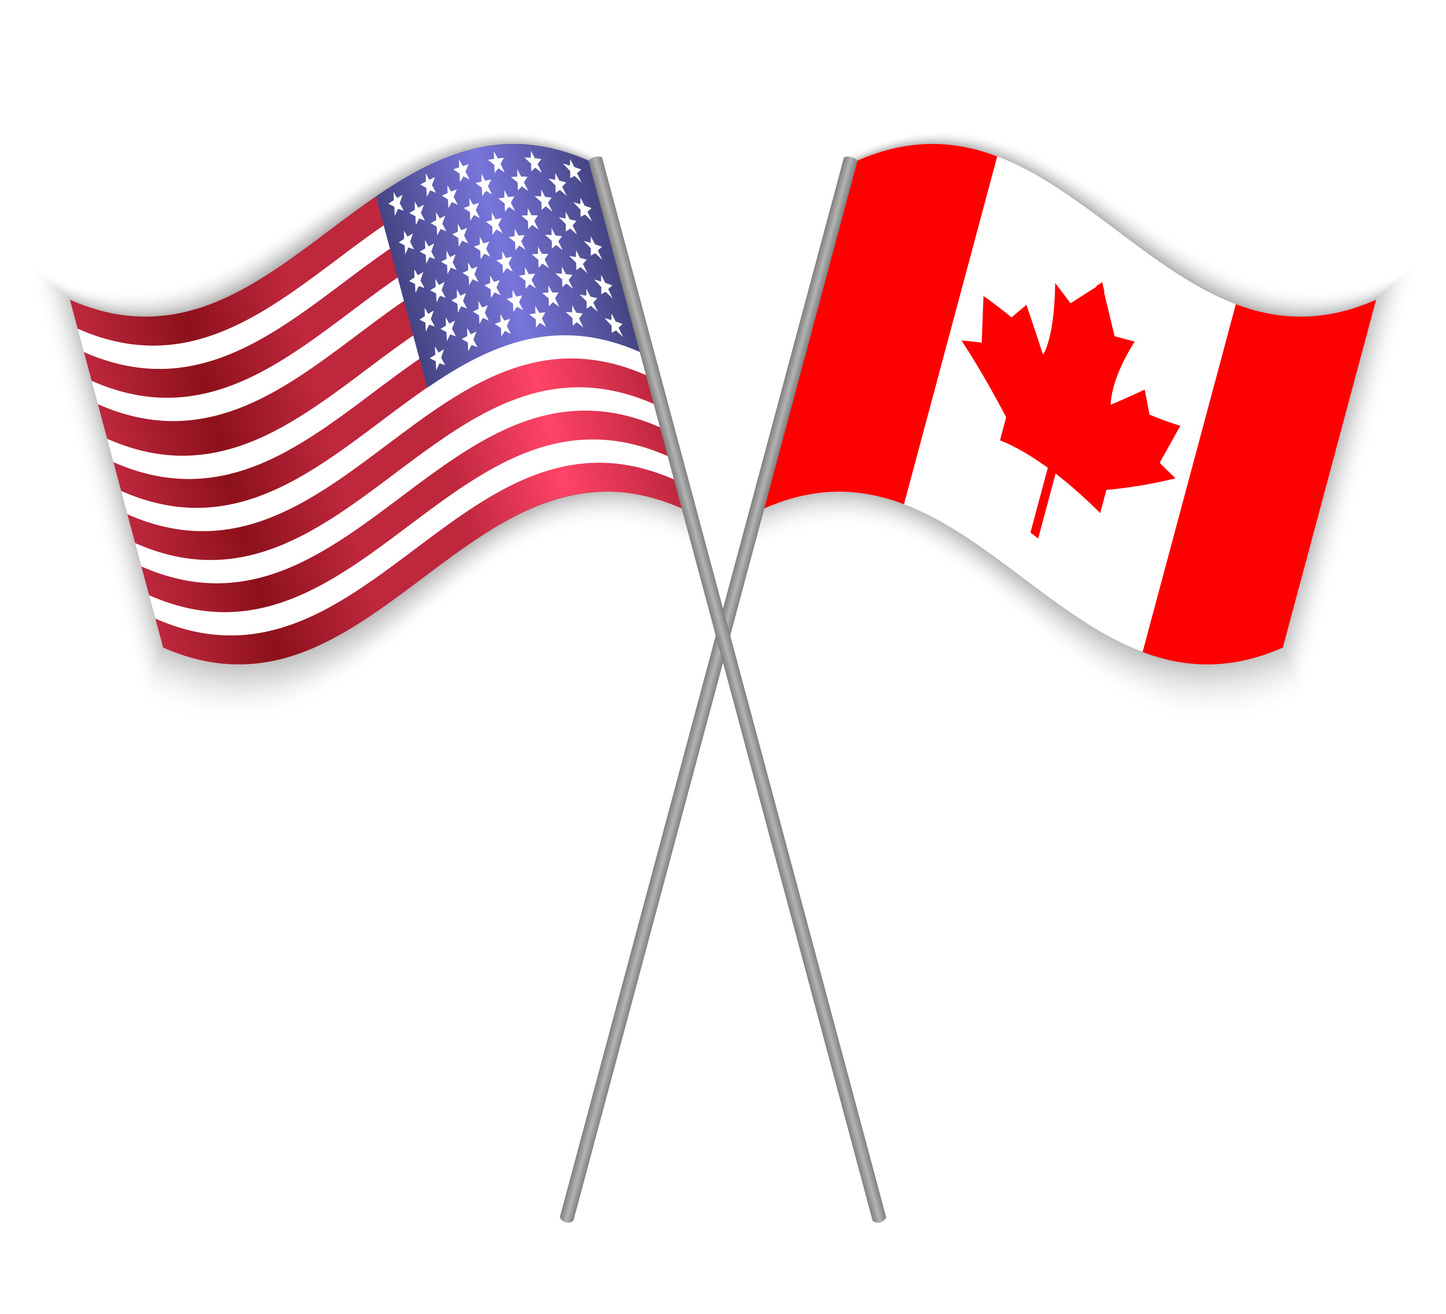 Fotolia_134688681_American and Canadian crossed flags_M